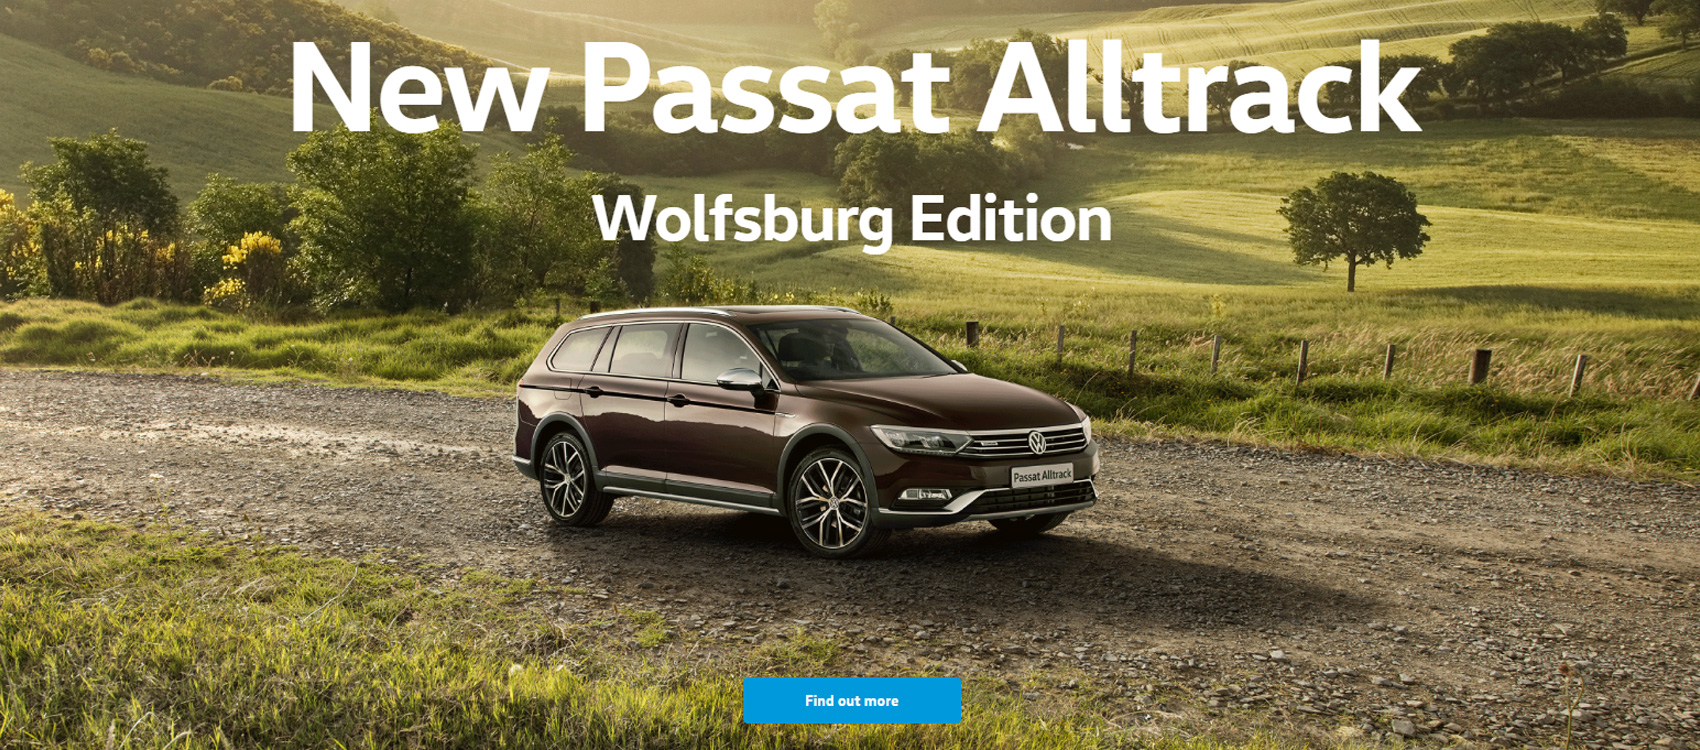 New Volkswagen Passat Alltrack Wolfsburg Edition available now from NMG VW